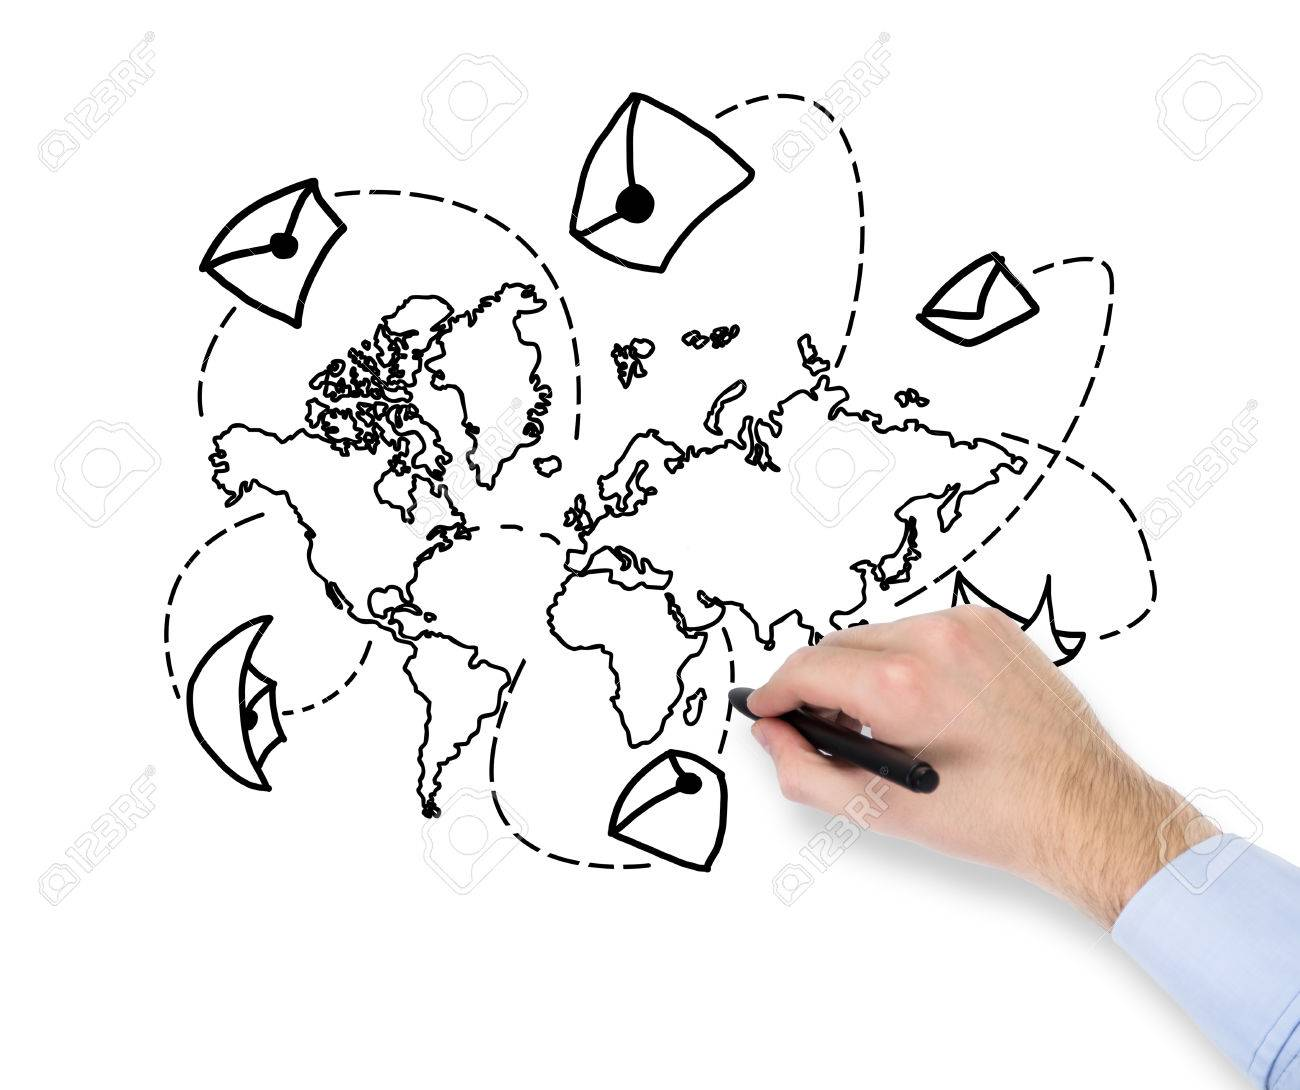 hight resolution of 1300x1090 drawing a world map map of spain in europe volvo 240 wiring diagrams